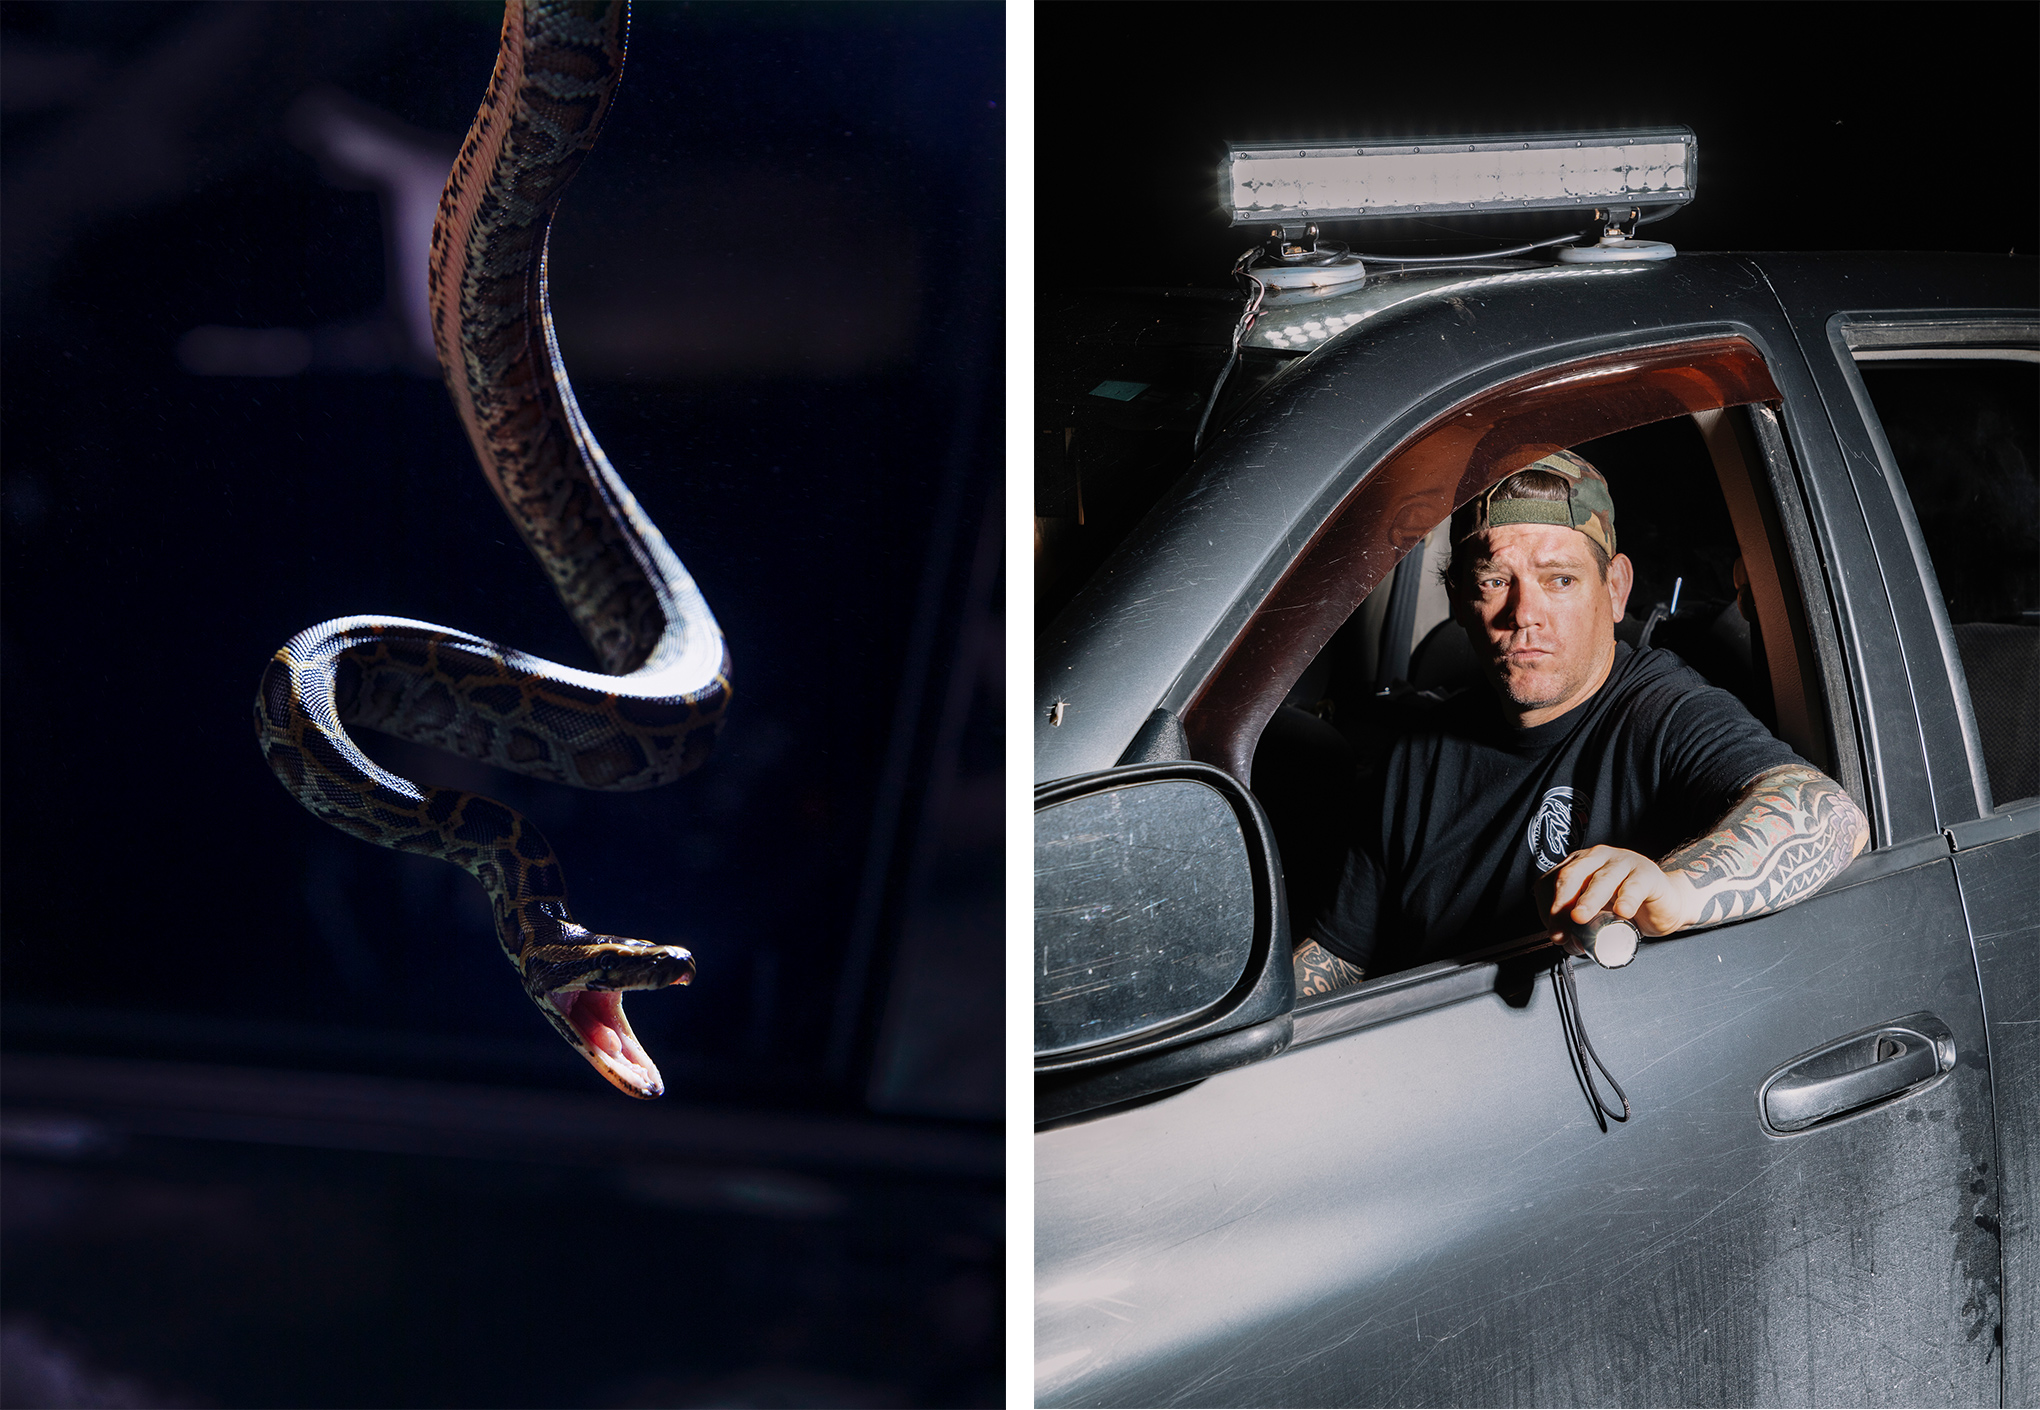 Left: A Burmese python hatchling that was caught by Tom Rahill; Right: Brian Hargrove searches for pythons out his truck window in the Everglades.